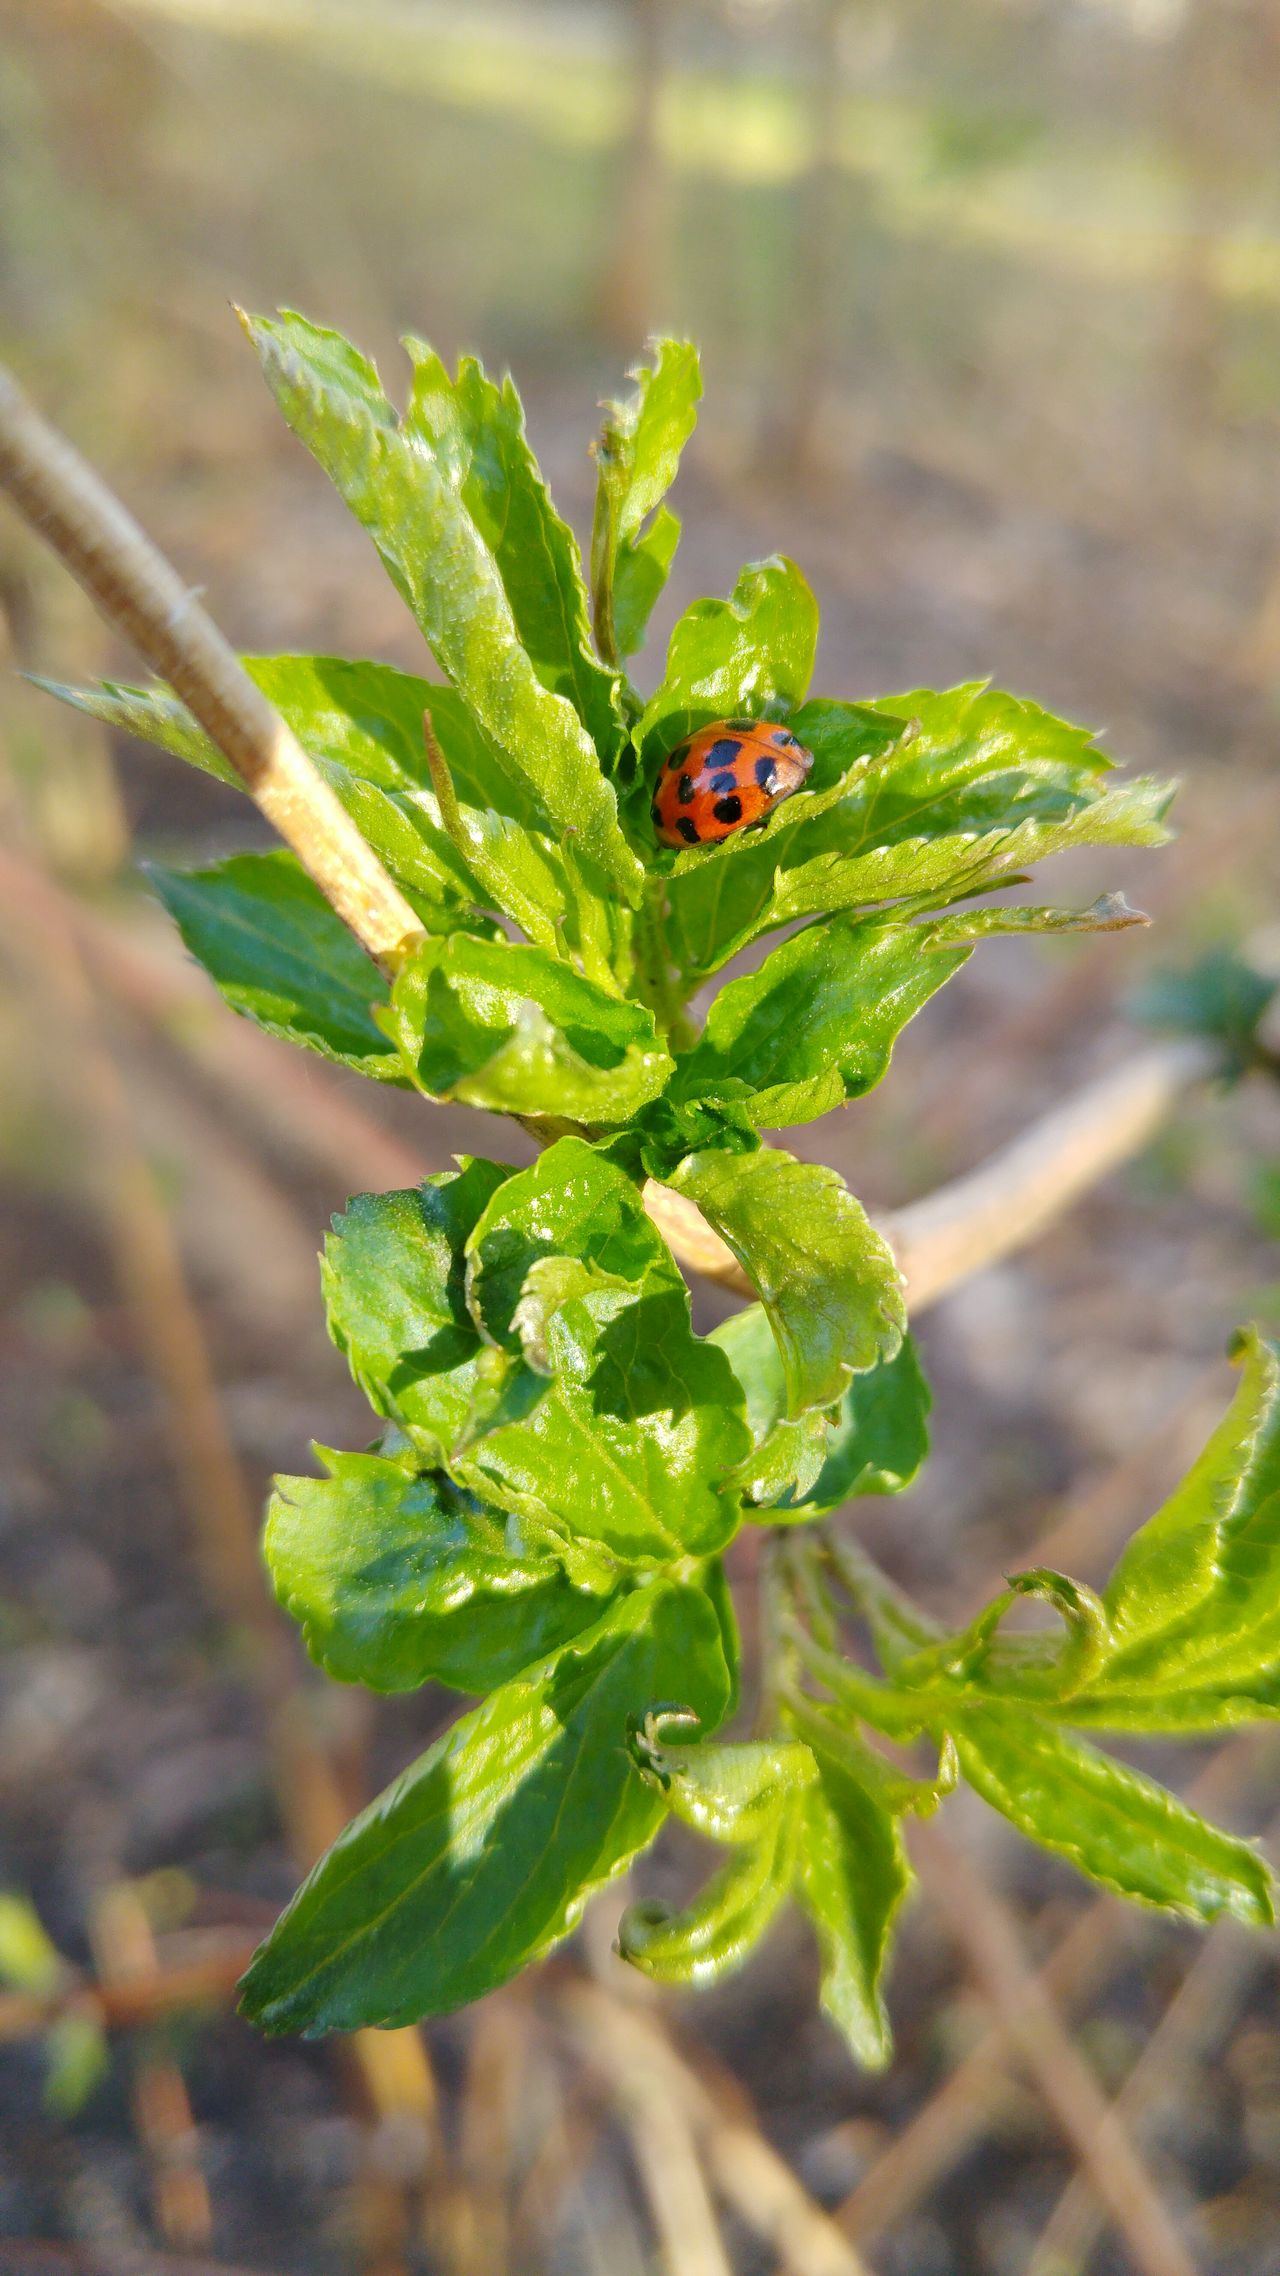 Close-up Leaf Nature Plant Outdoors Growth Beauty In Nature Insect No People Forest Green Color Day Beauty In Nature Beautiful Beautiful Nature Ladybug Spring Freshness Fragility Animal Themes Animals In The Wild Tree Leaves